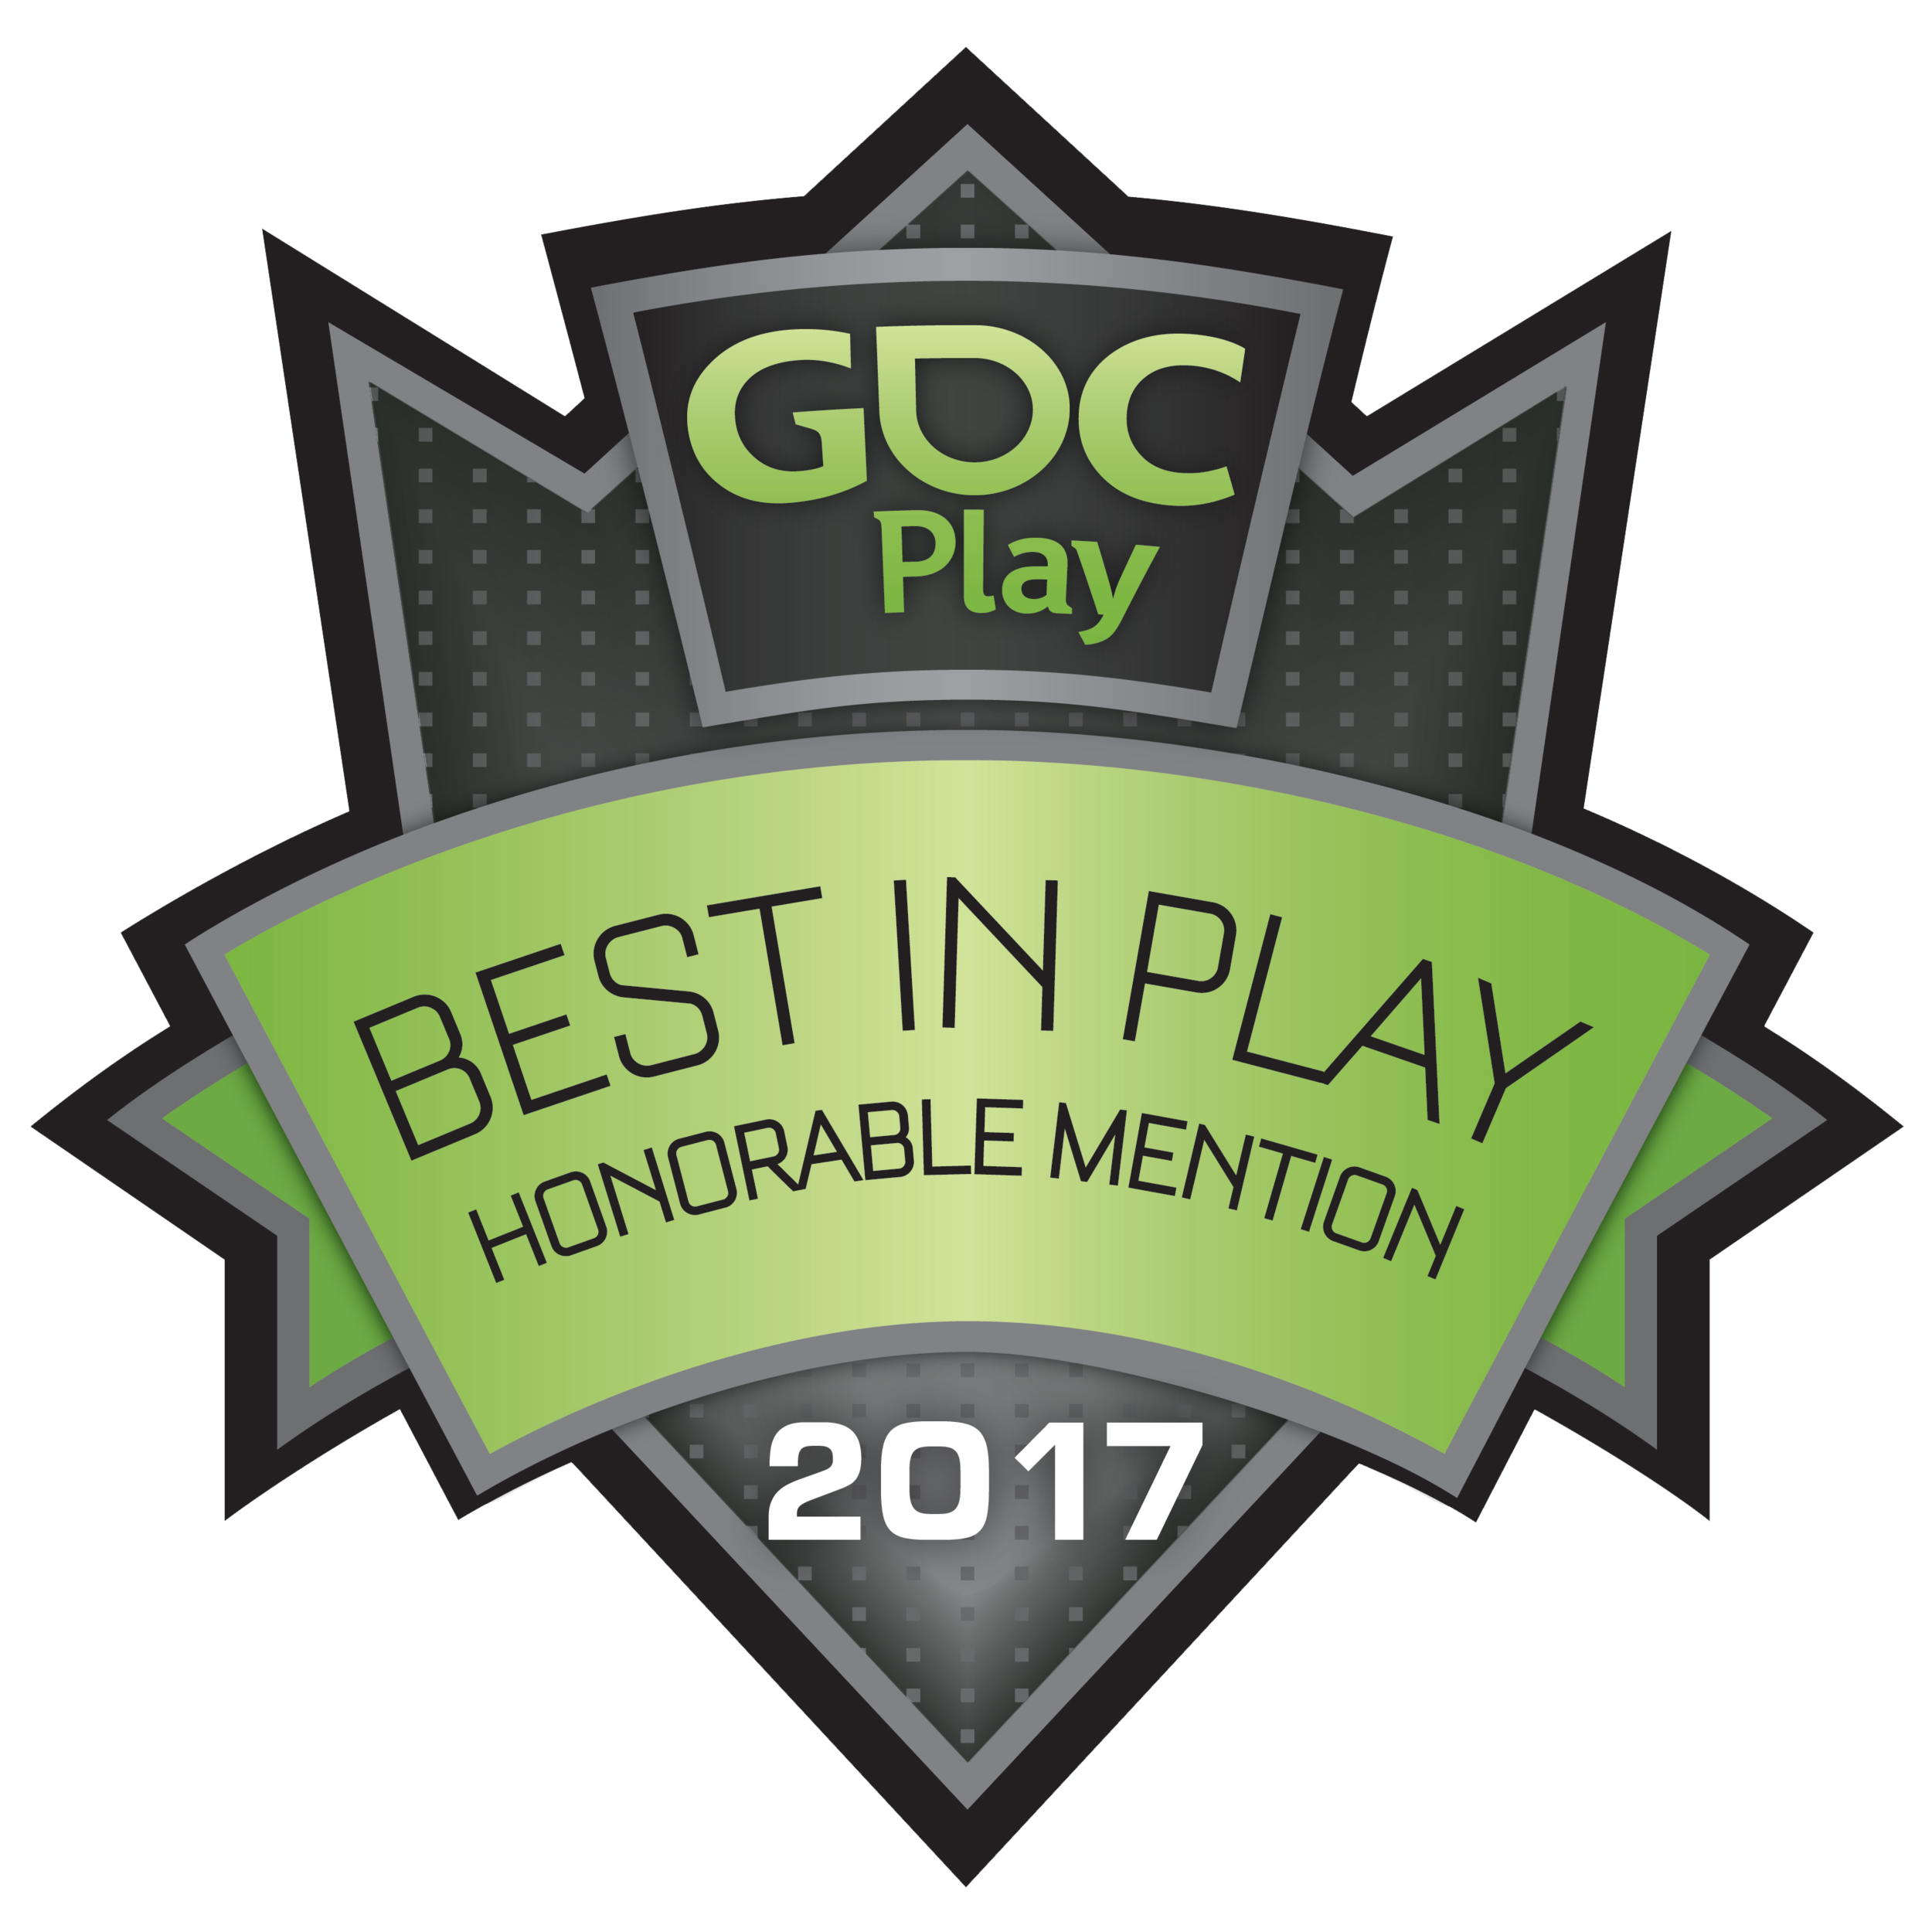 Best in Play 2017 Honorable Mention  logo.png